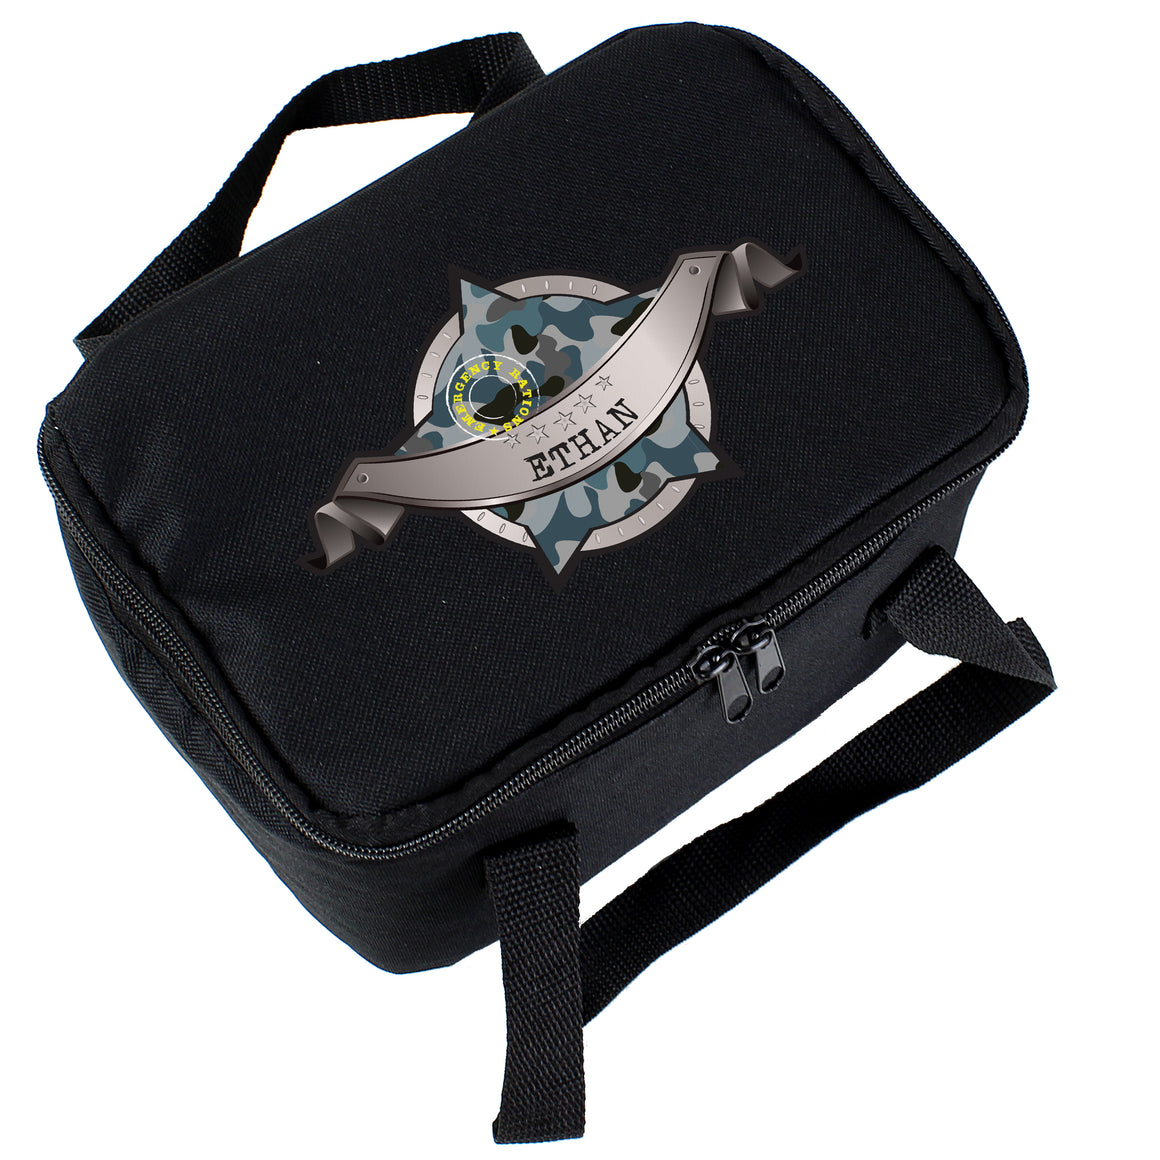 ersonalised Army Camo Black Lunch Bag